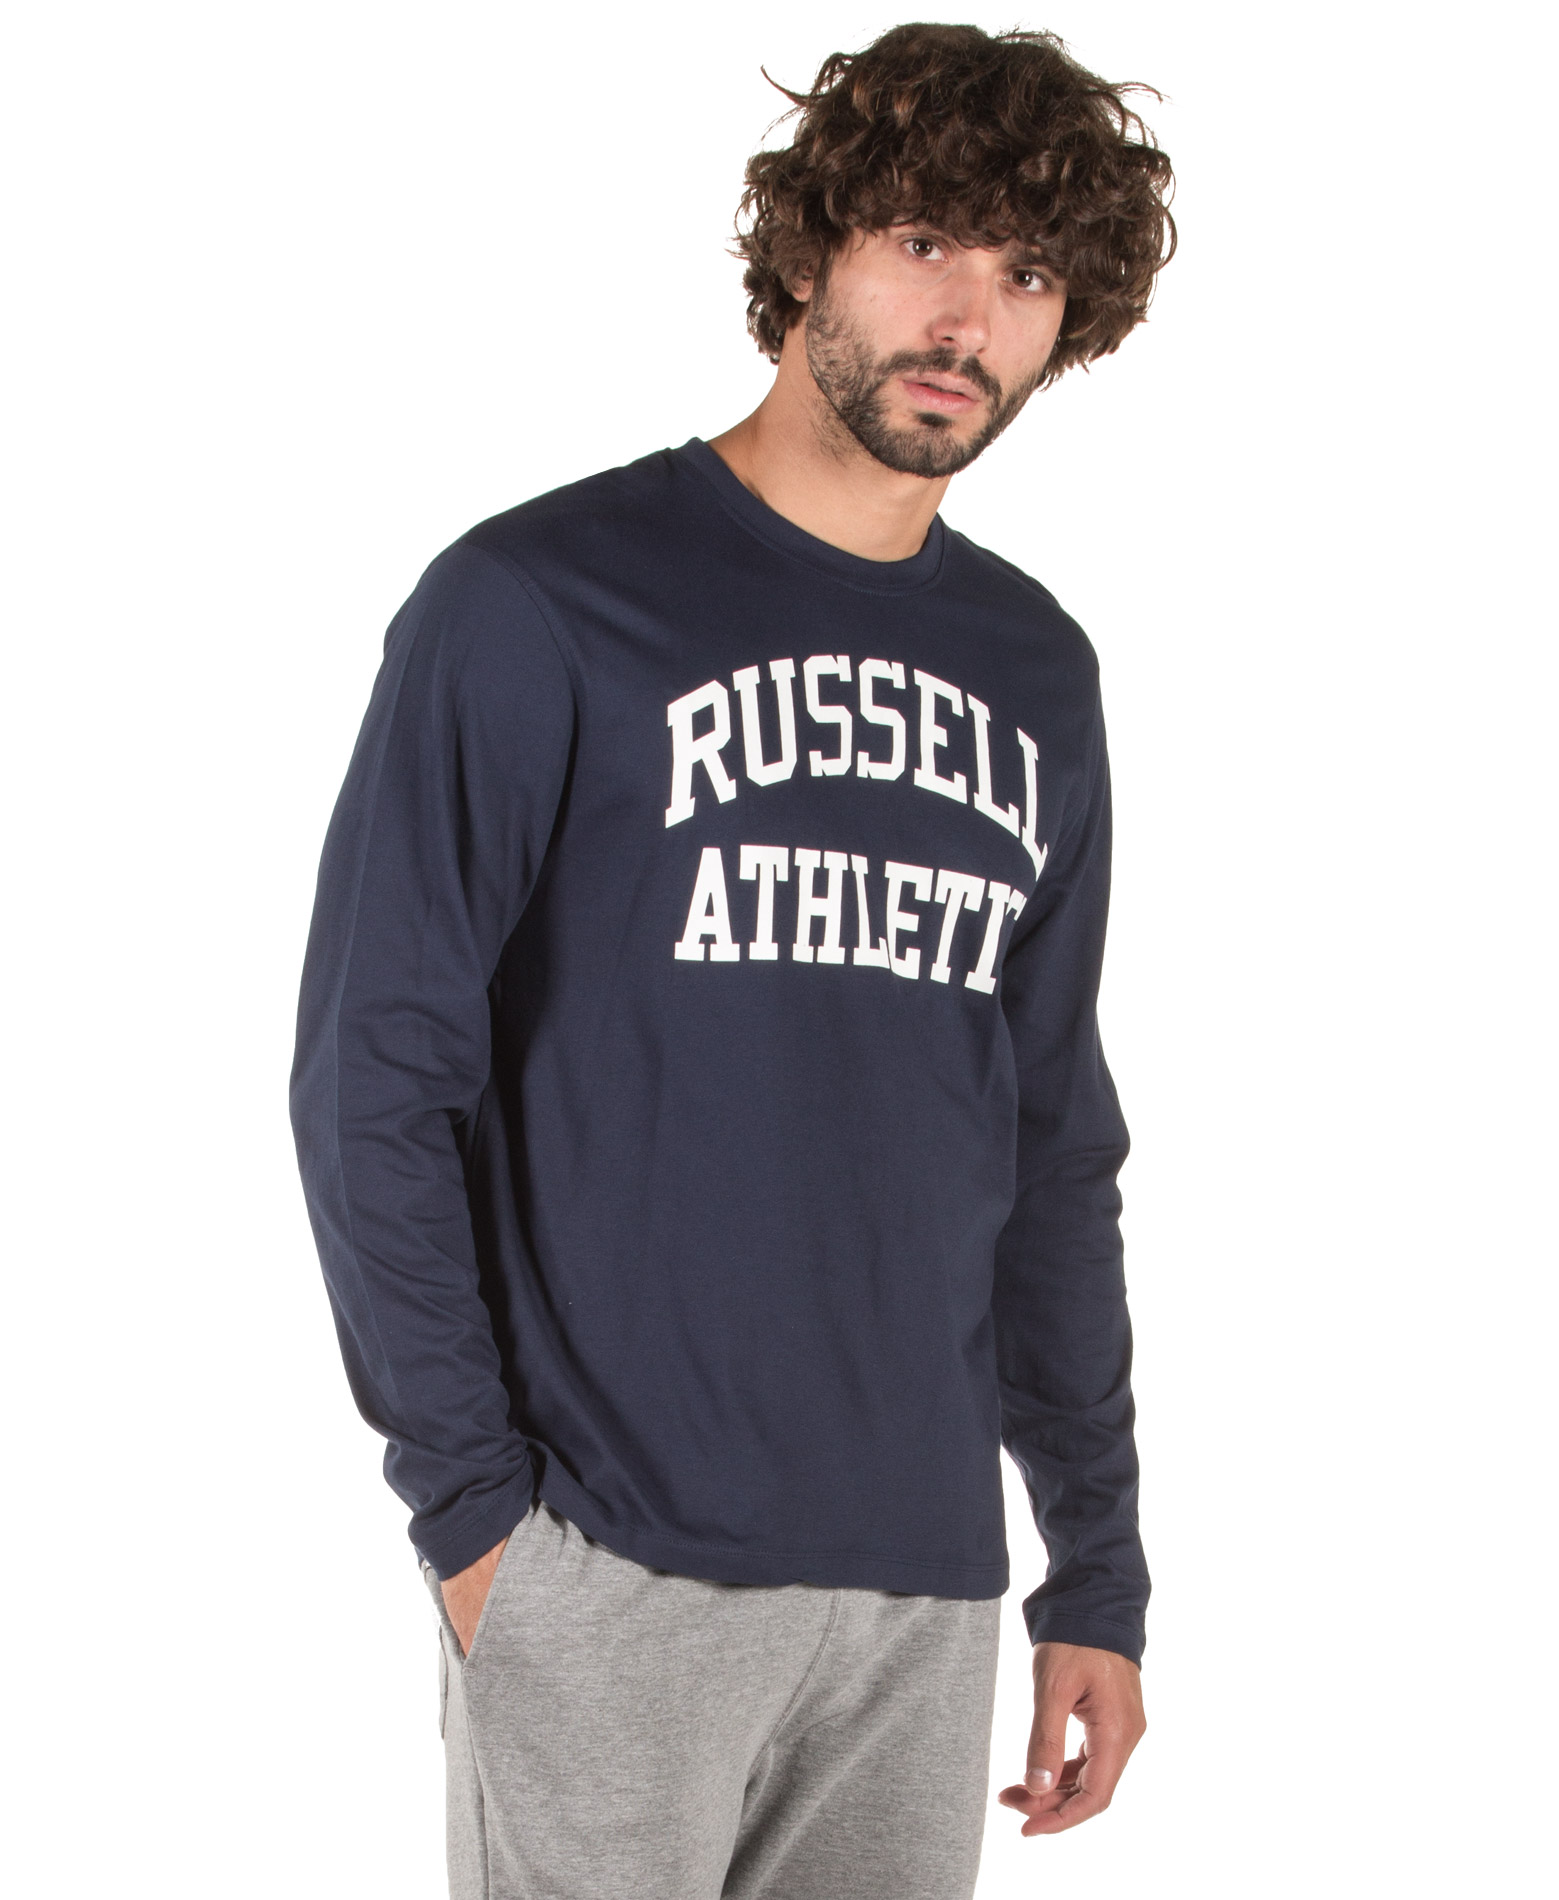 Russell Athletic A8-003-2-190 Μπλε